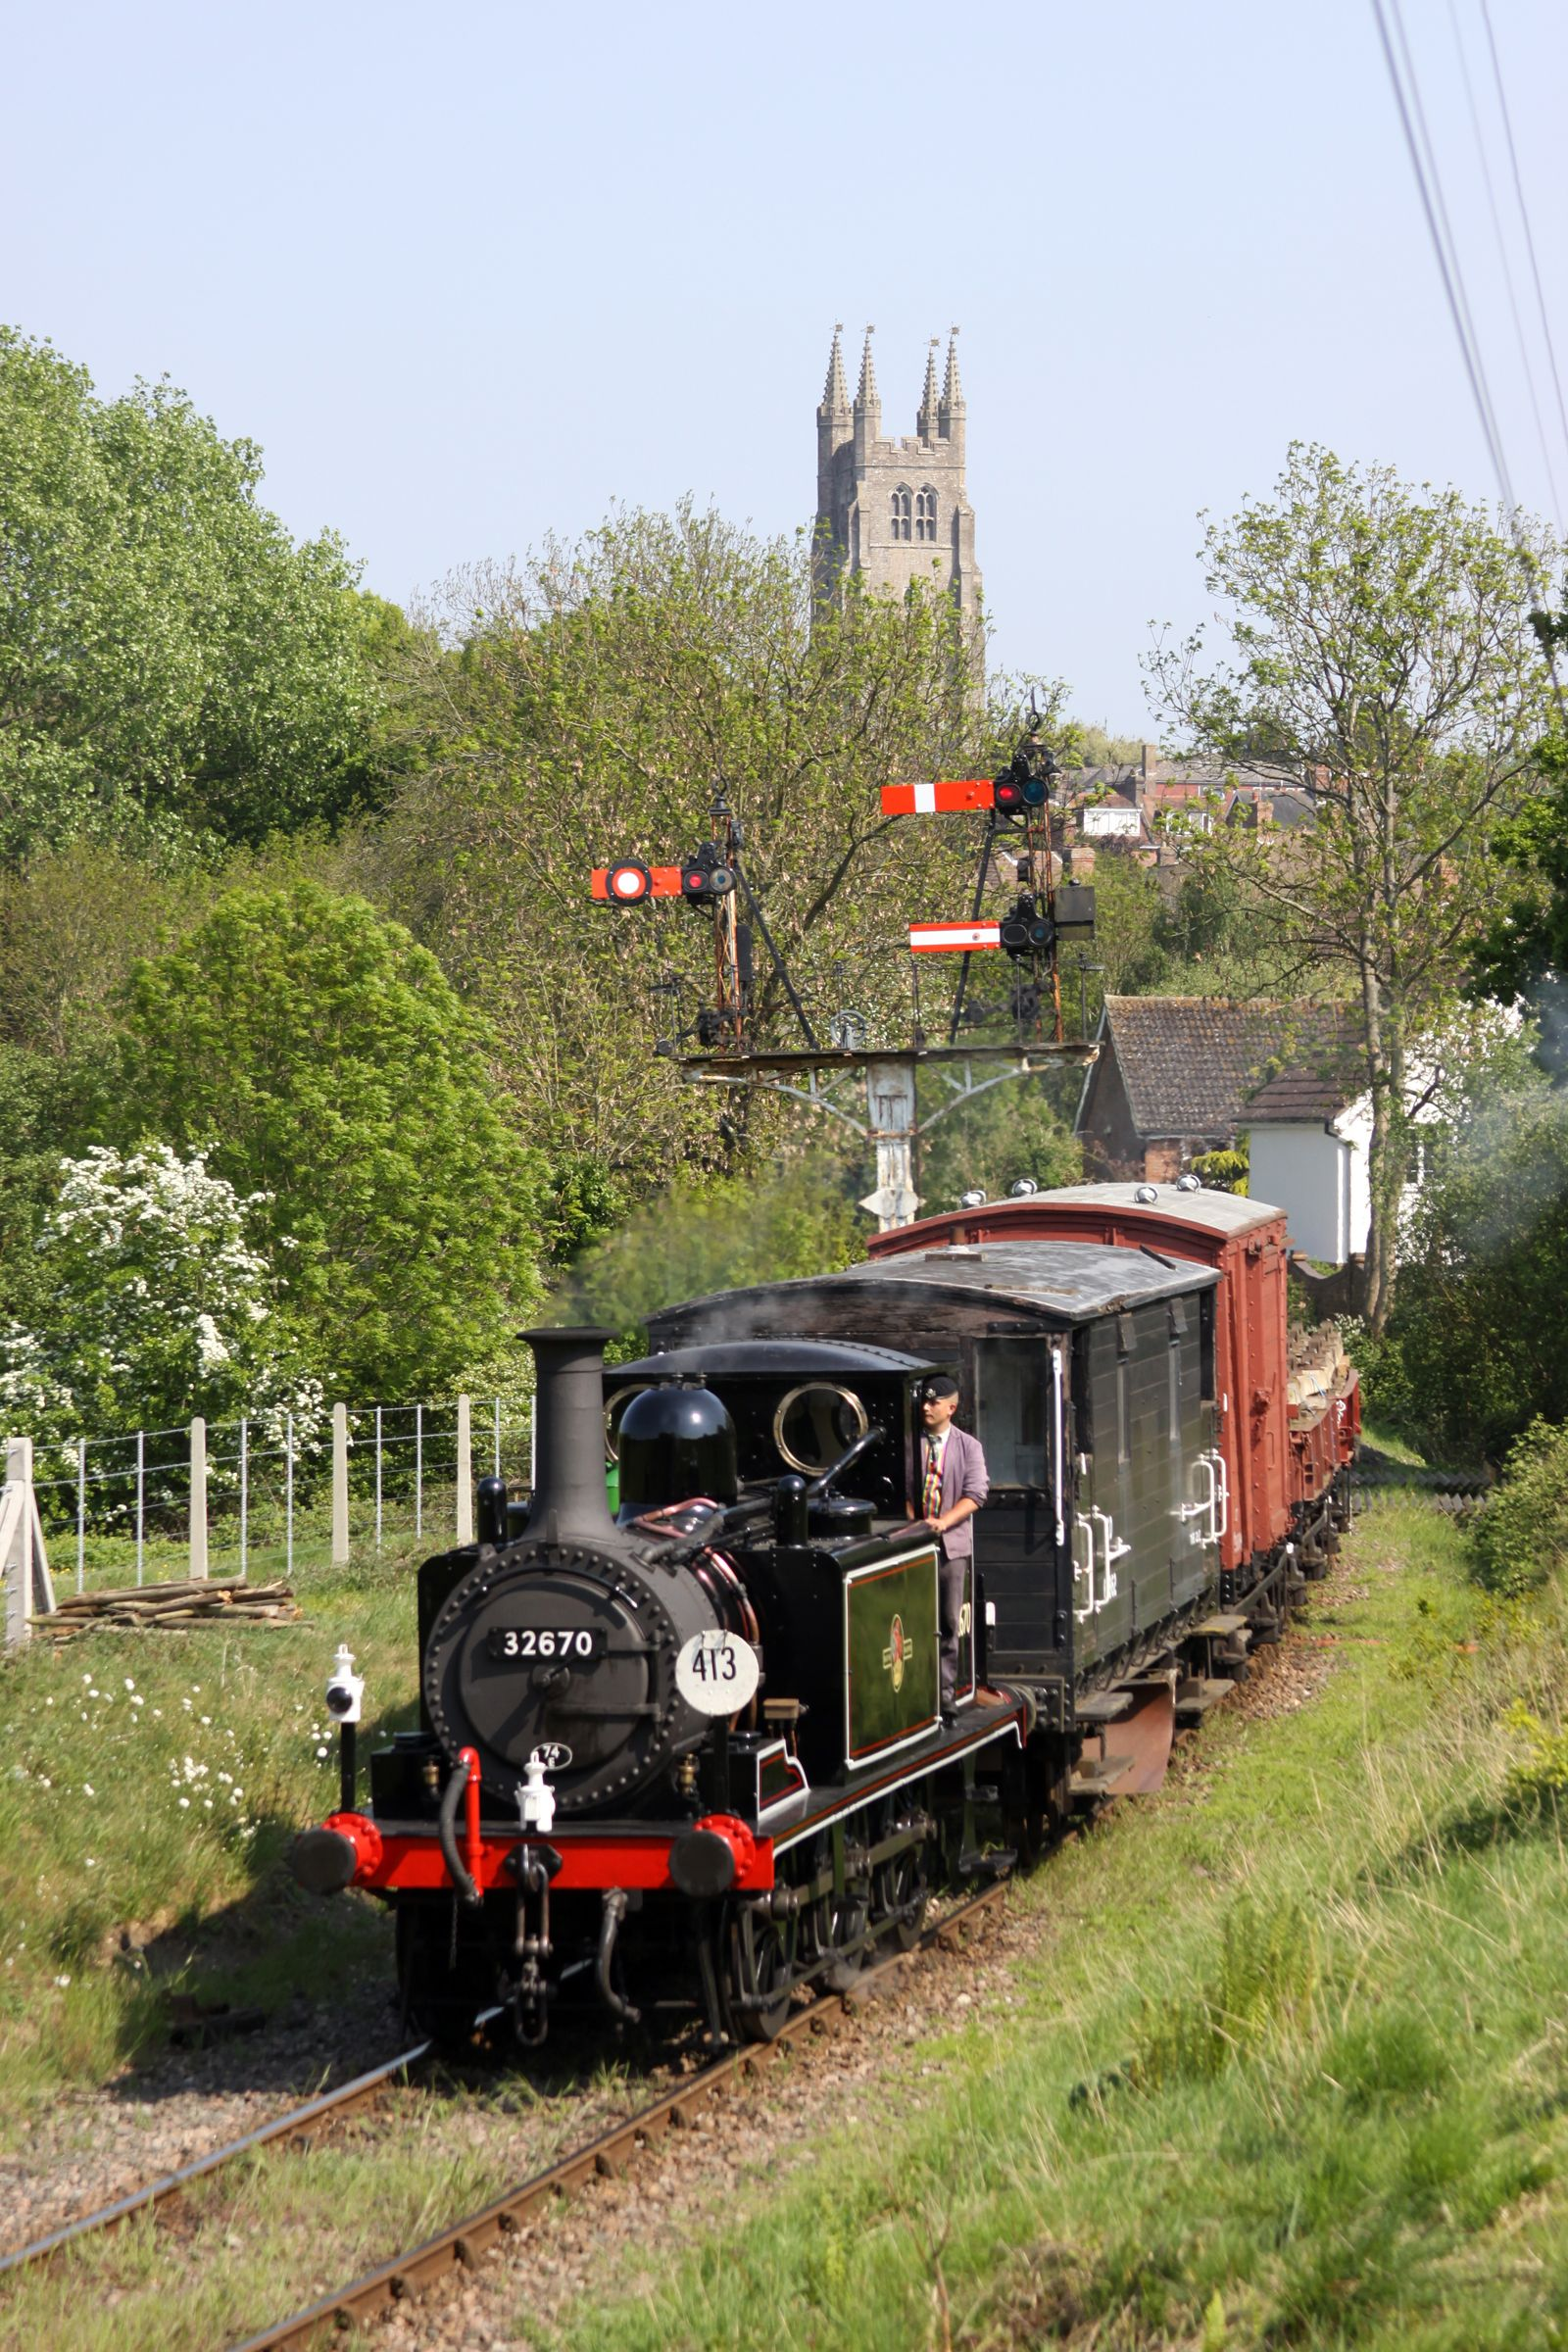 The Kent and East Sussex Railway leaving from Tenterden in Kent, England